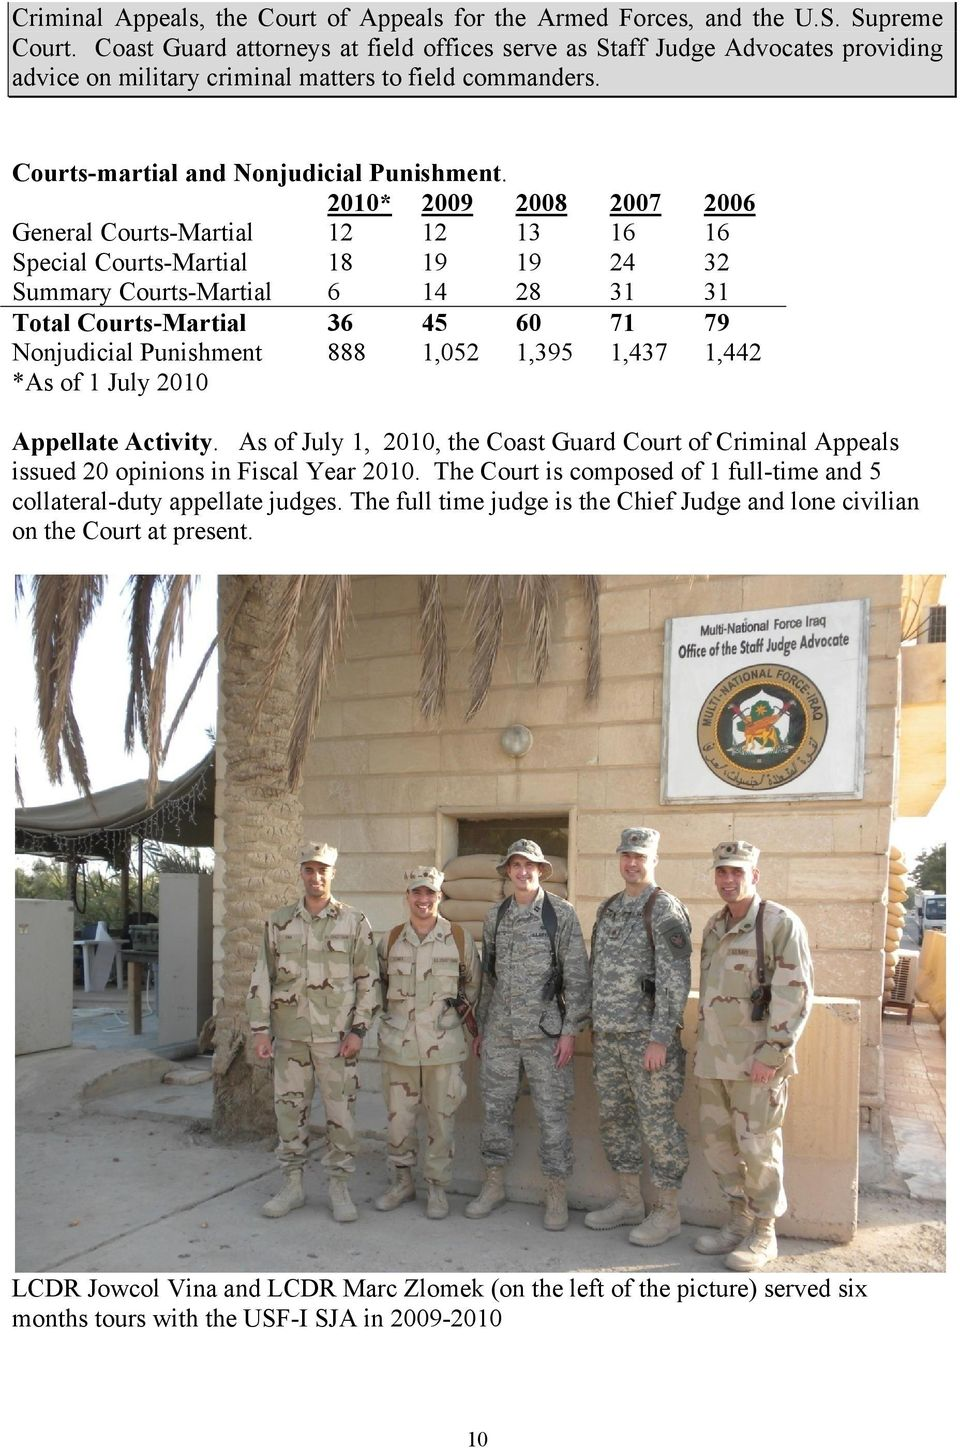 2010* 2009 2008 2007 2006 General Courts-Martial 12 12 13 16 16 Special Courts-Martial 18 19 19 24 32 Summary Courts-Martial 6 14 28 31 31 Total Courts-Martial 36 45 60 71 79 Nonjudicial Punishment